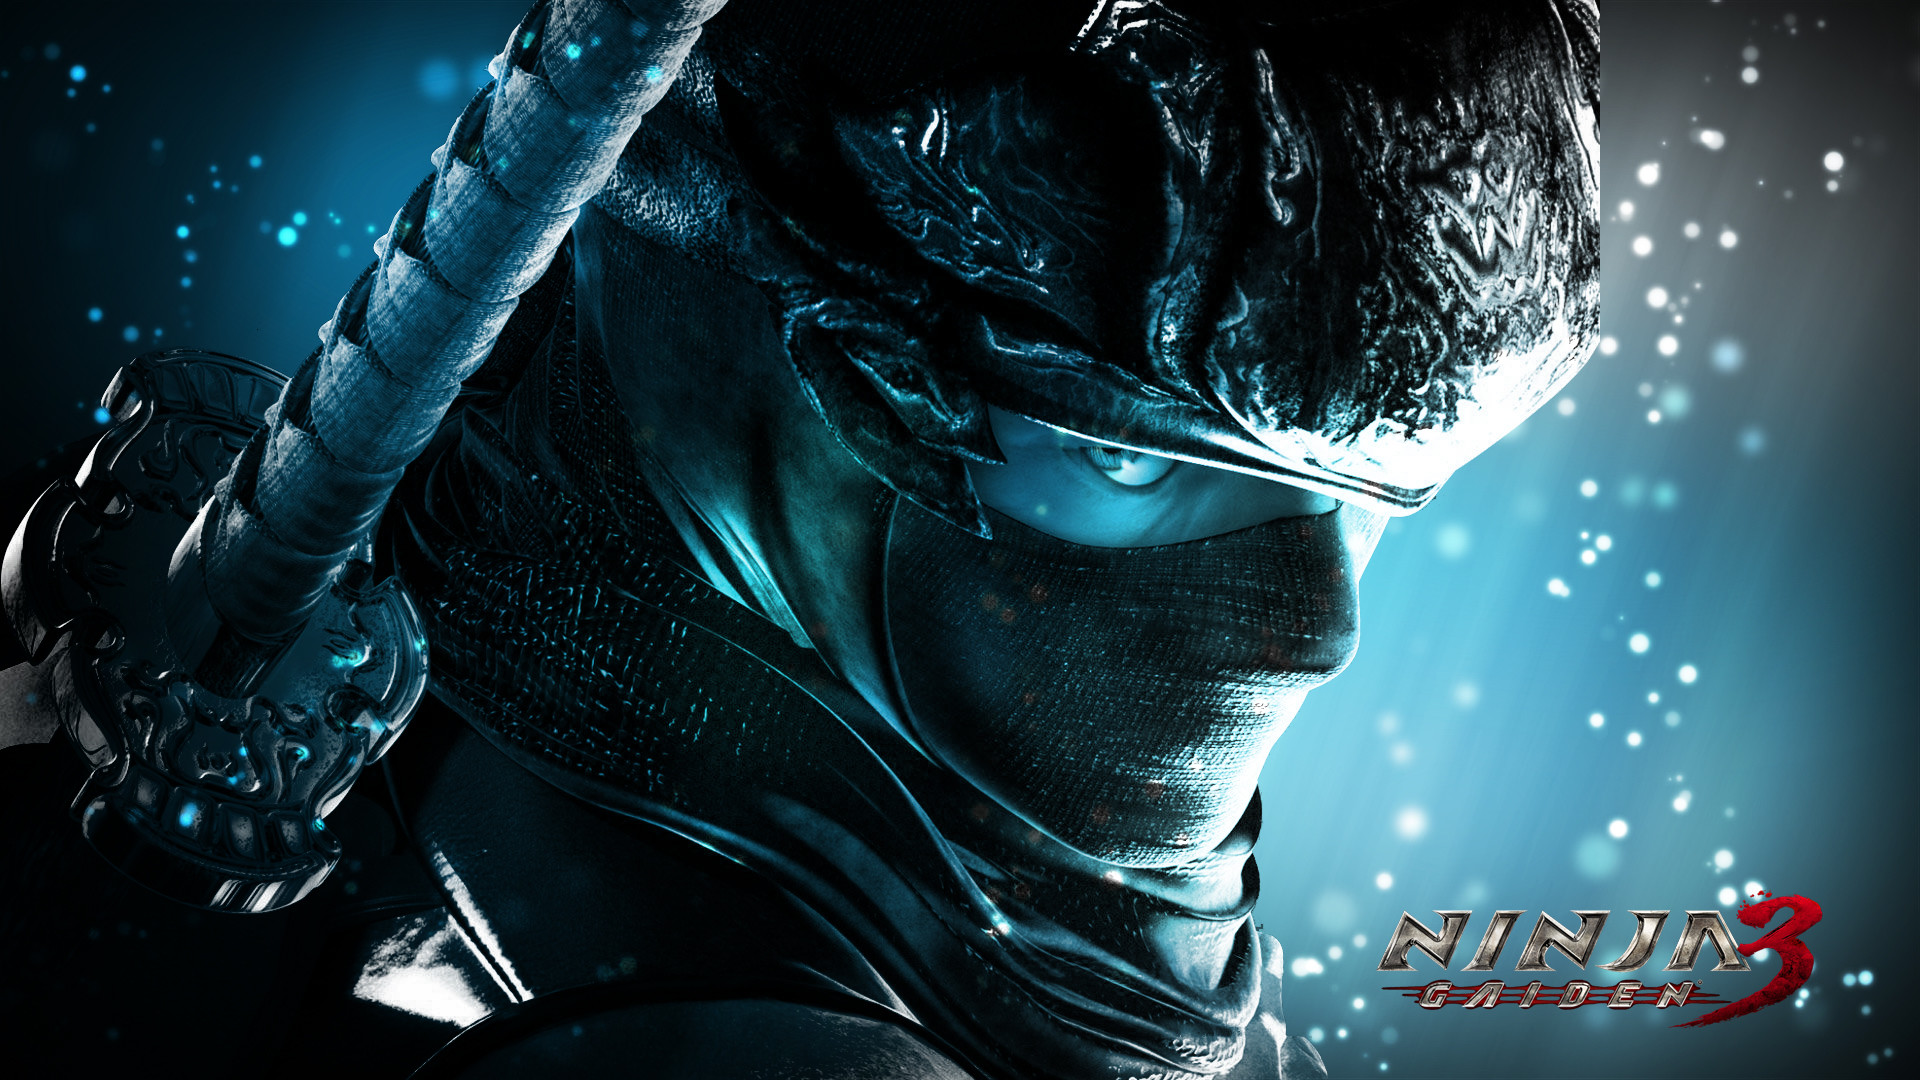 1920x1080 NINJA GAIDEN fantasy anime warrior weapon sword poster f wallpaper |   | 212535 | WallpaperUP